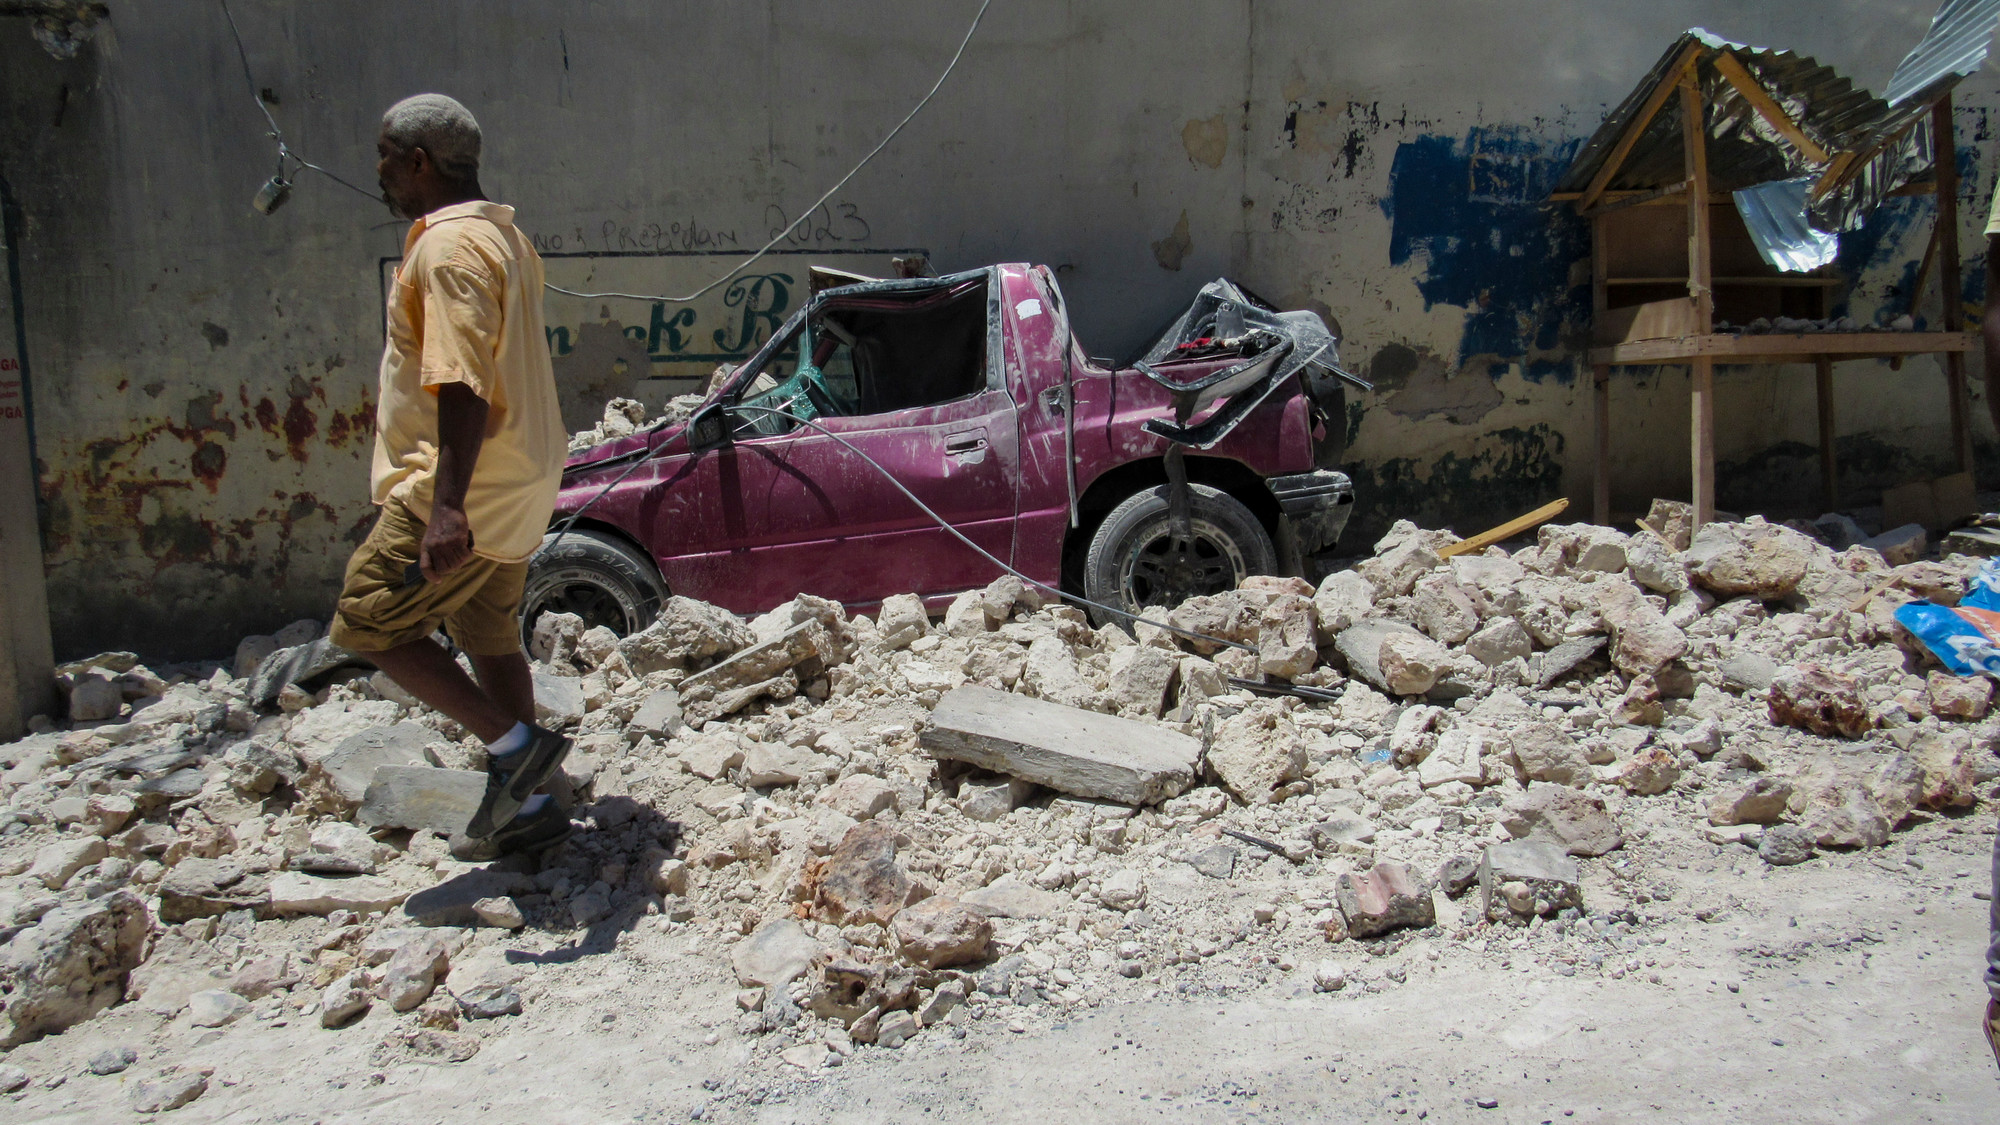 Footage of Port-au-Prince, Haiti following the 7.2 magnitude earthquake that struck on August 14, 2021.